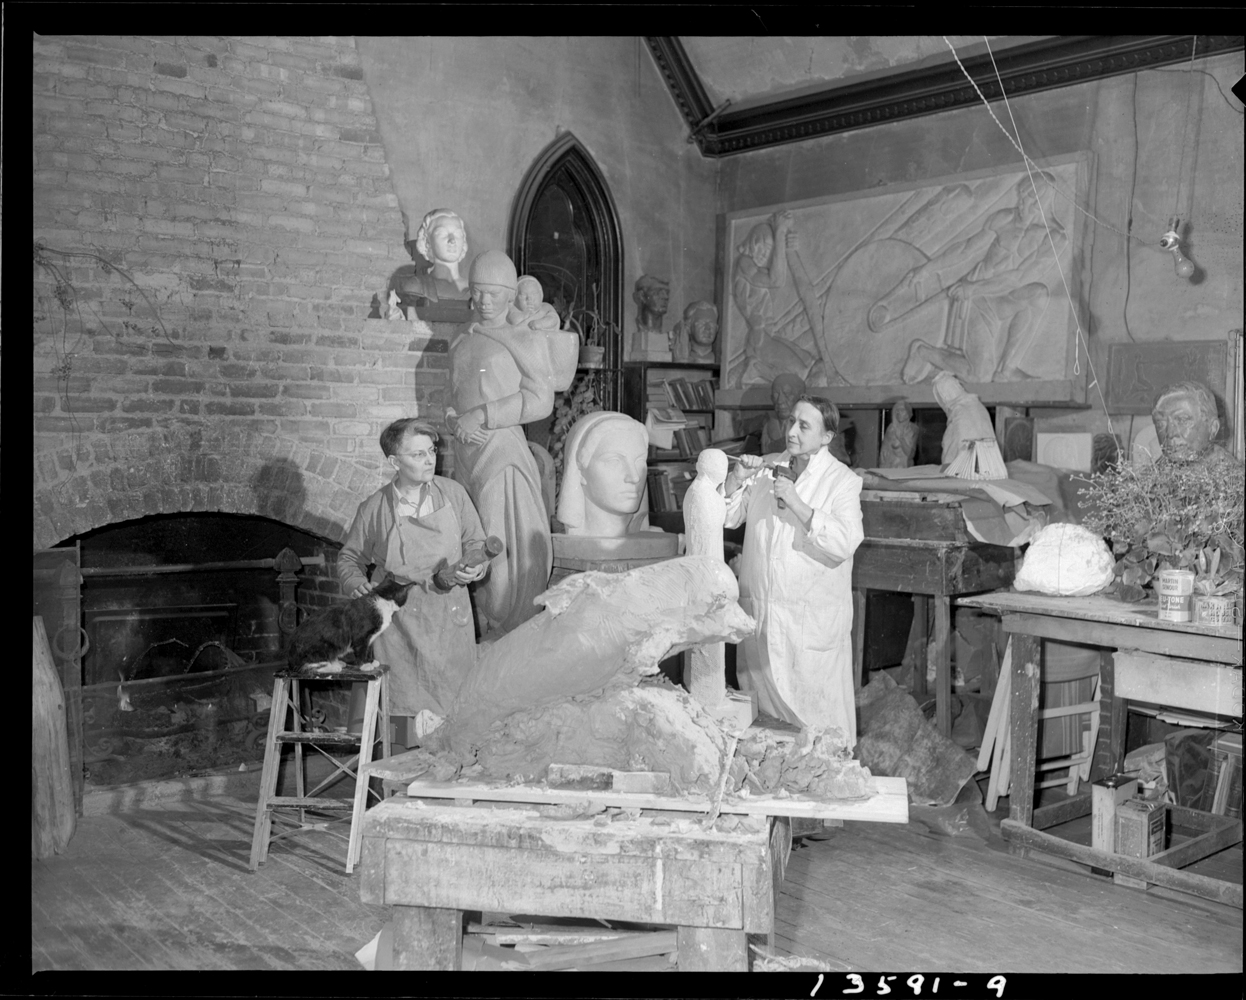 Frances Loring and sculptor Florence Wyle